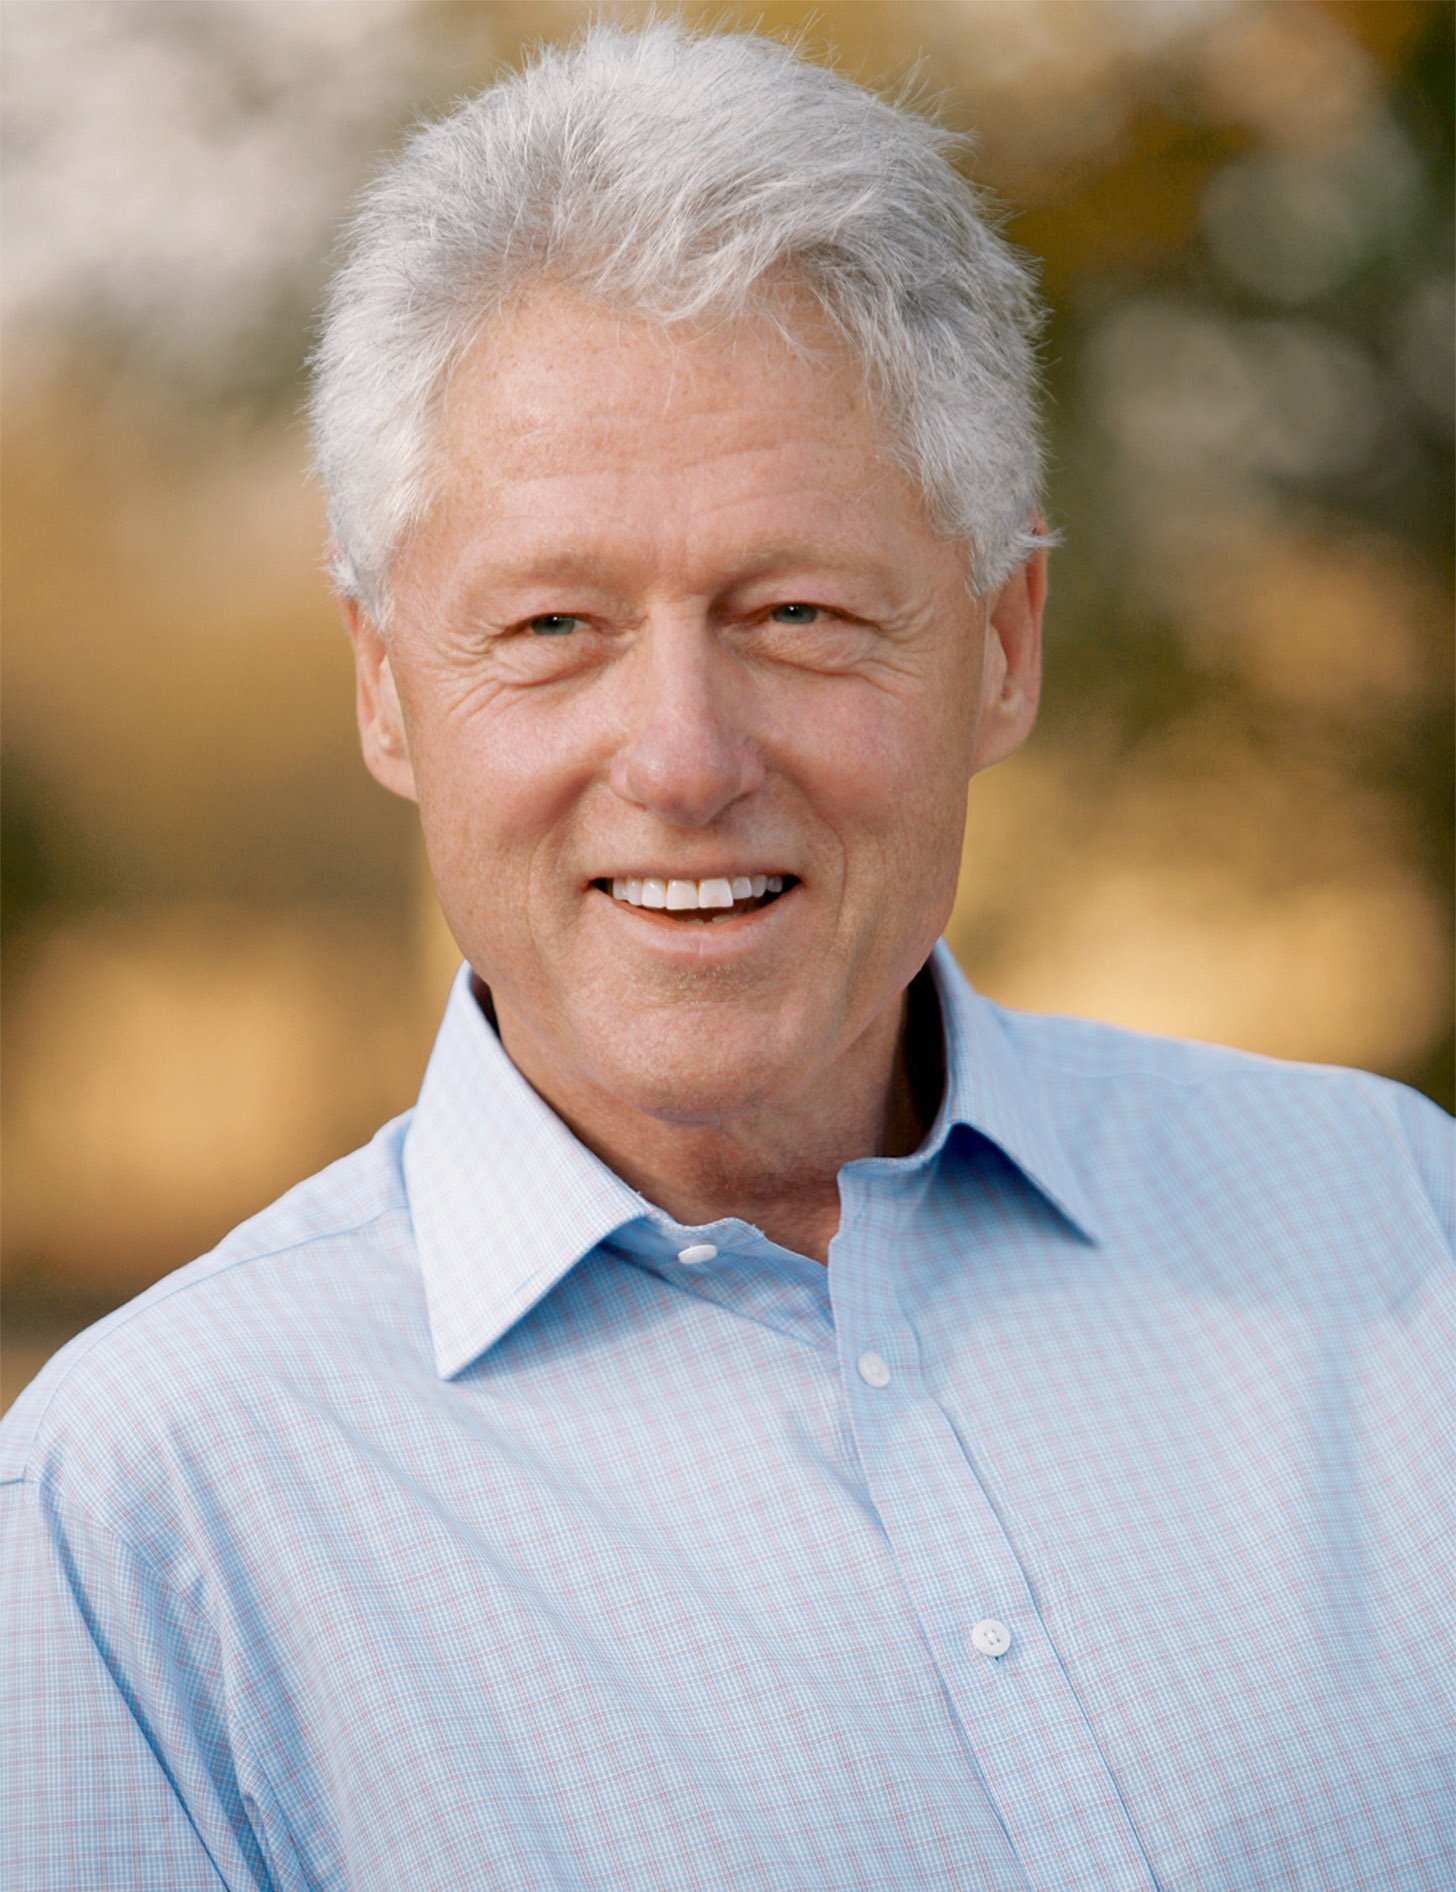 a biography of william jefferson clinton a former us president William jefferson blythe iii on august 19, 1946, in hope, ar) was the 42nd president of the united states he served from 1993 to 2001 he served from 1993 to 2001 clinton was the second president to be impeached, on charges of perjury and obstruction of justice in a scandal involving a white house intern.